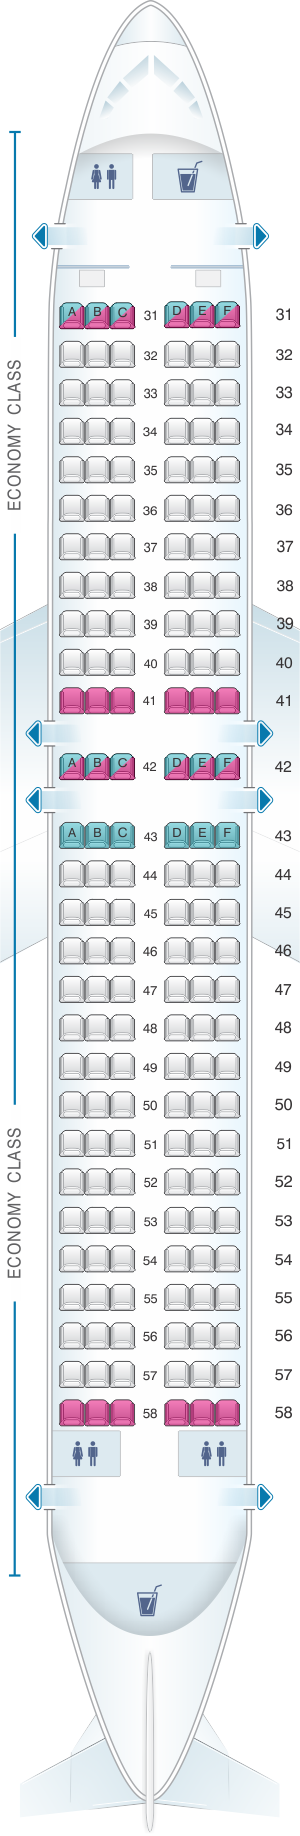 Seat map for Thai Airways International Airbus A320 200 (32S)